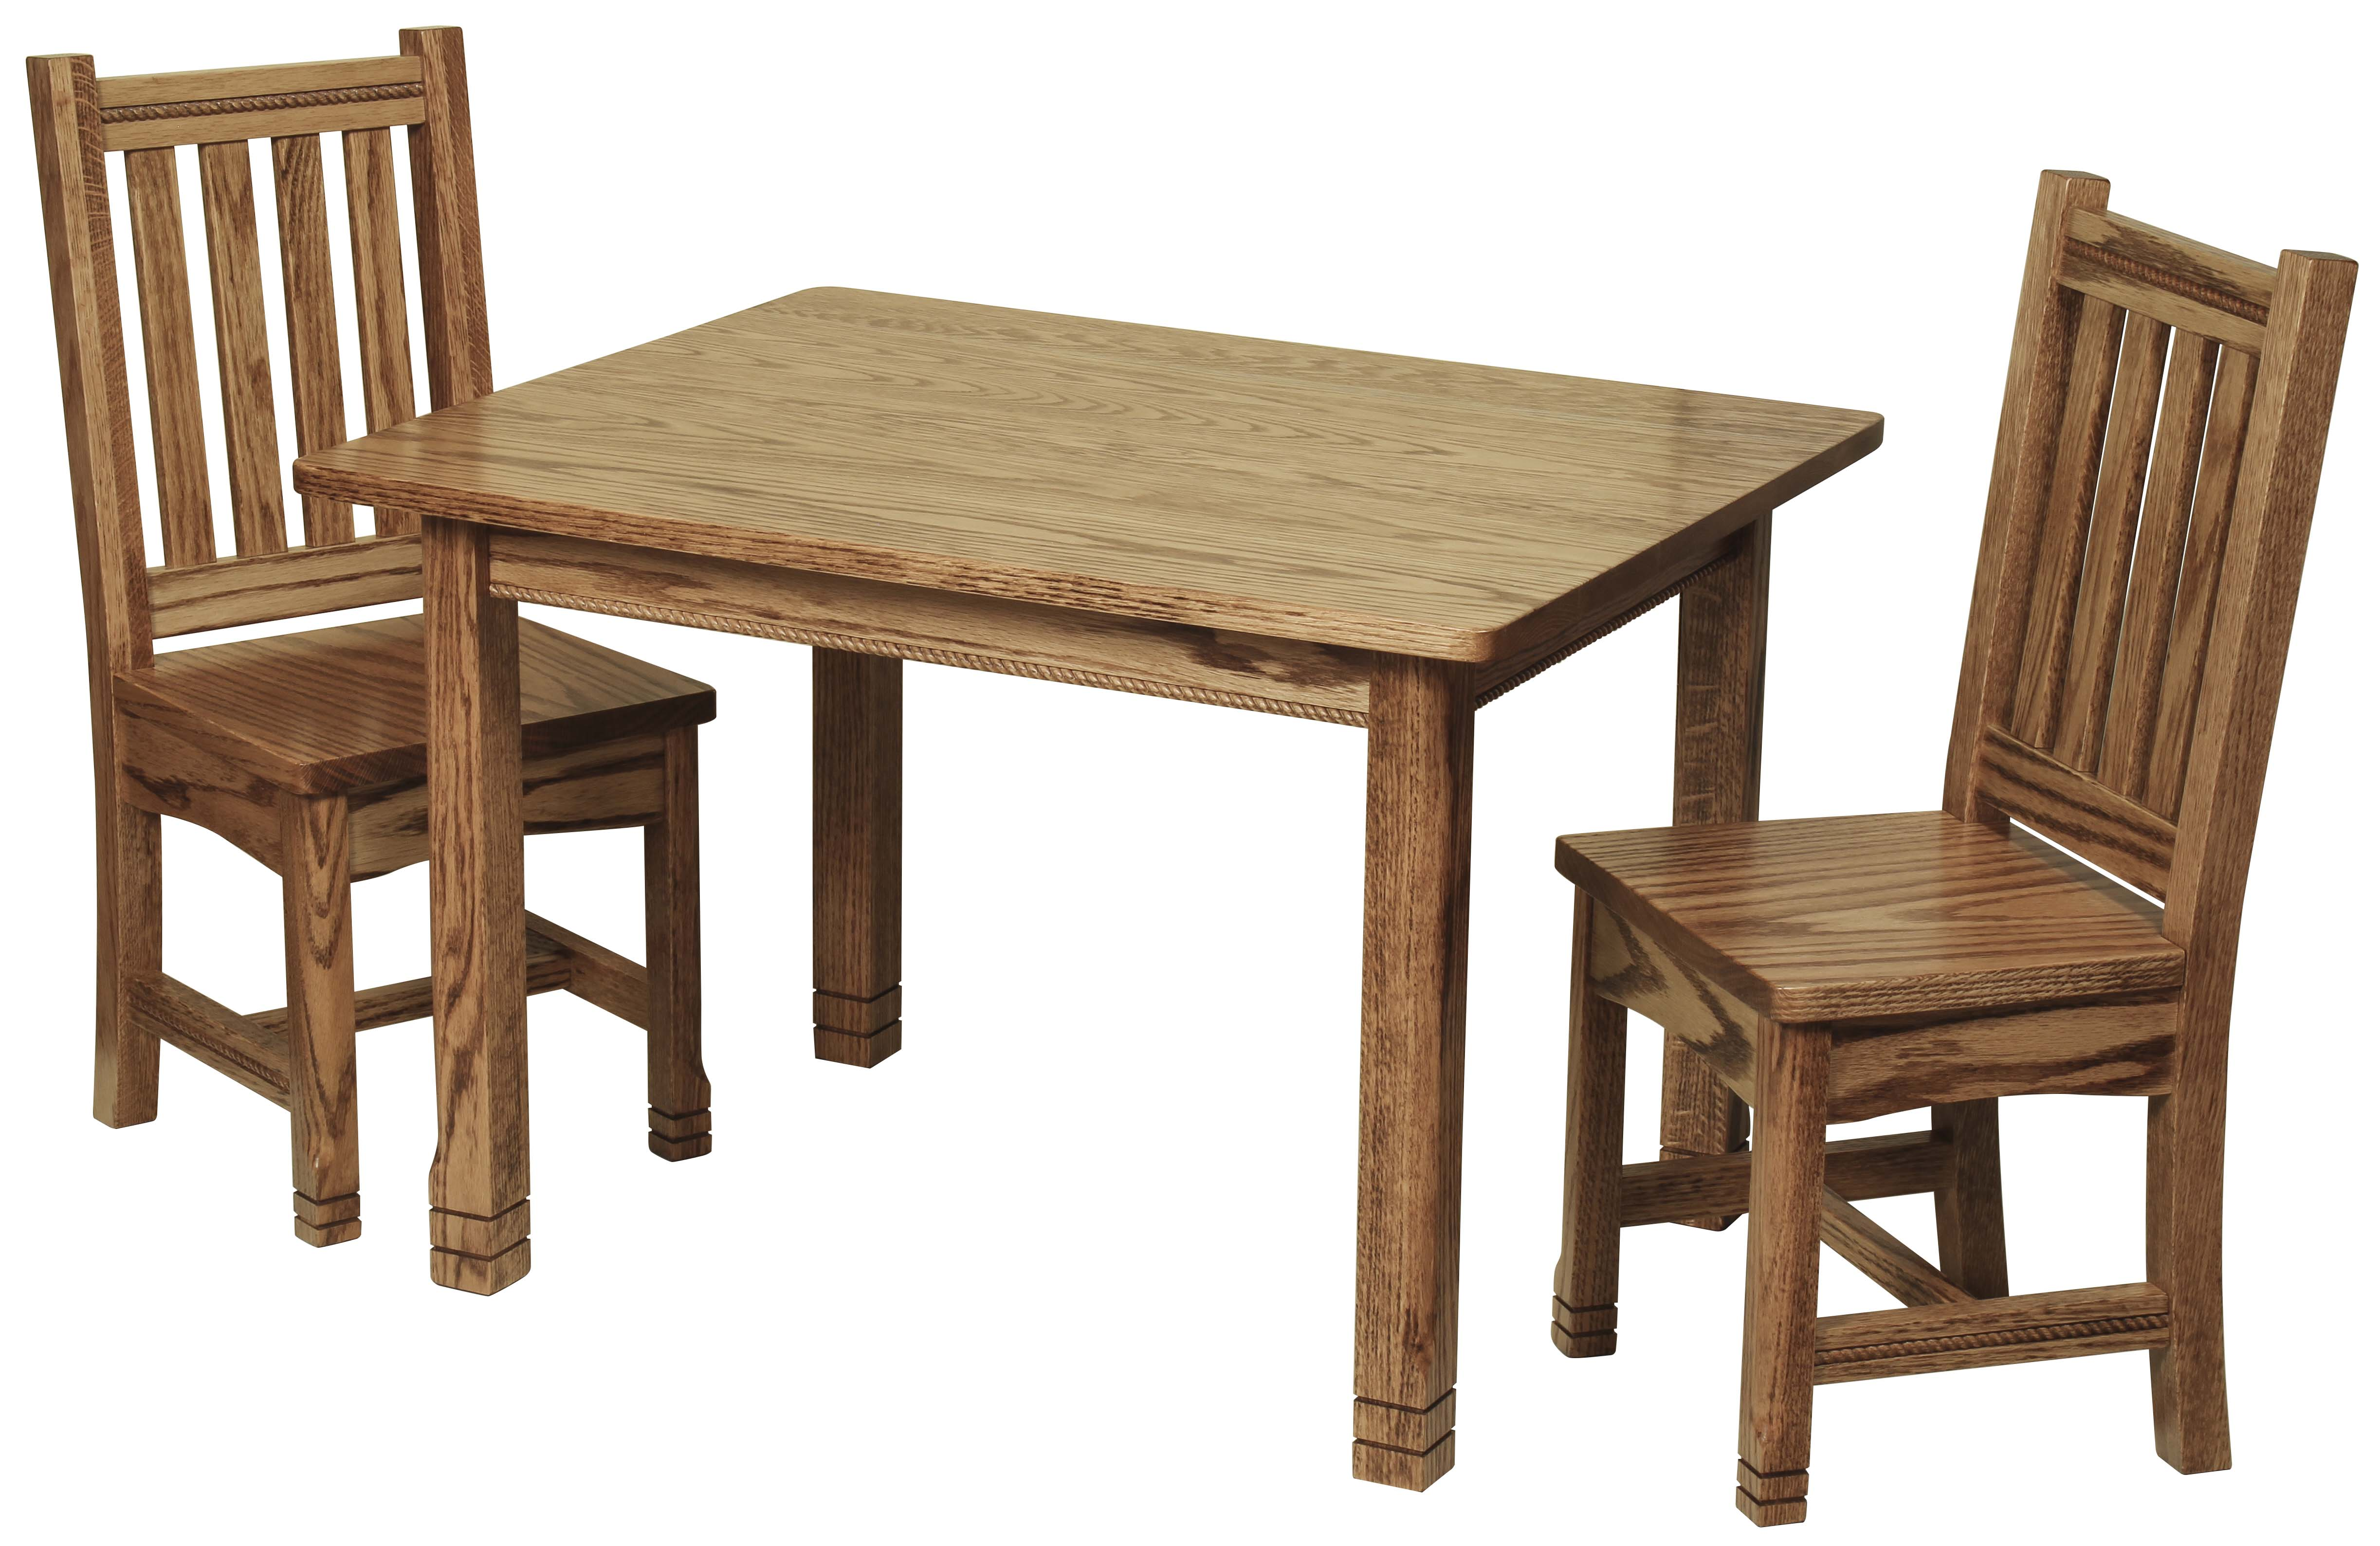 Child's Westlake Table Product